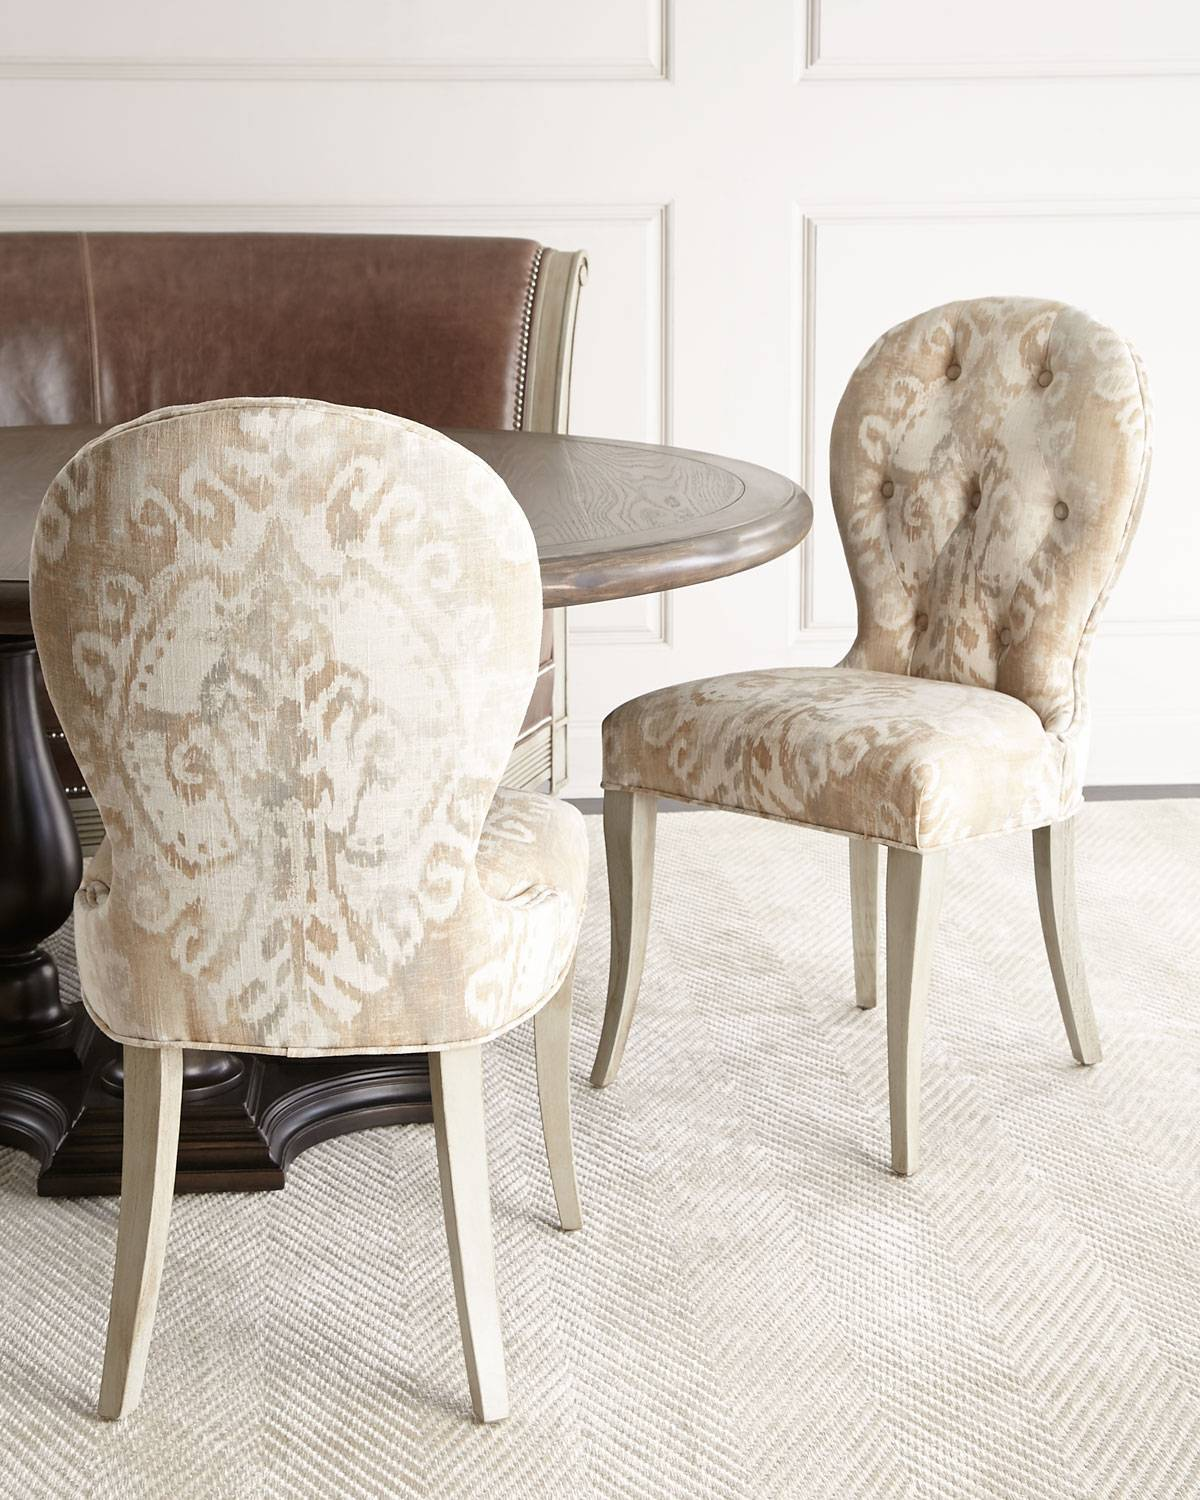 Massoud Porcelain Dining Chair - IVORY TAN